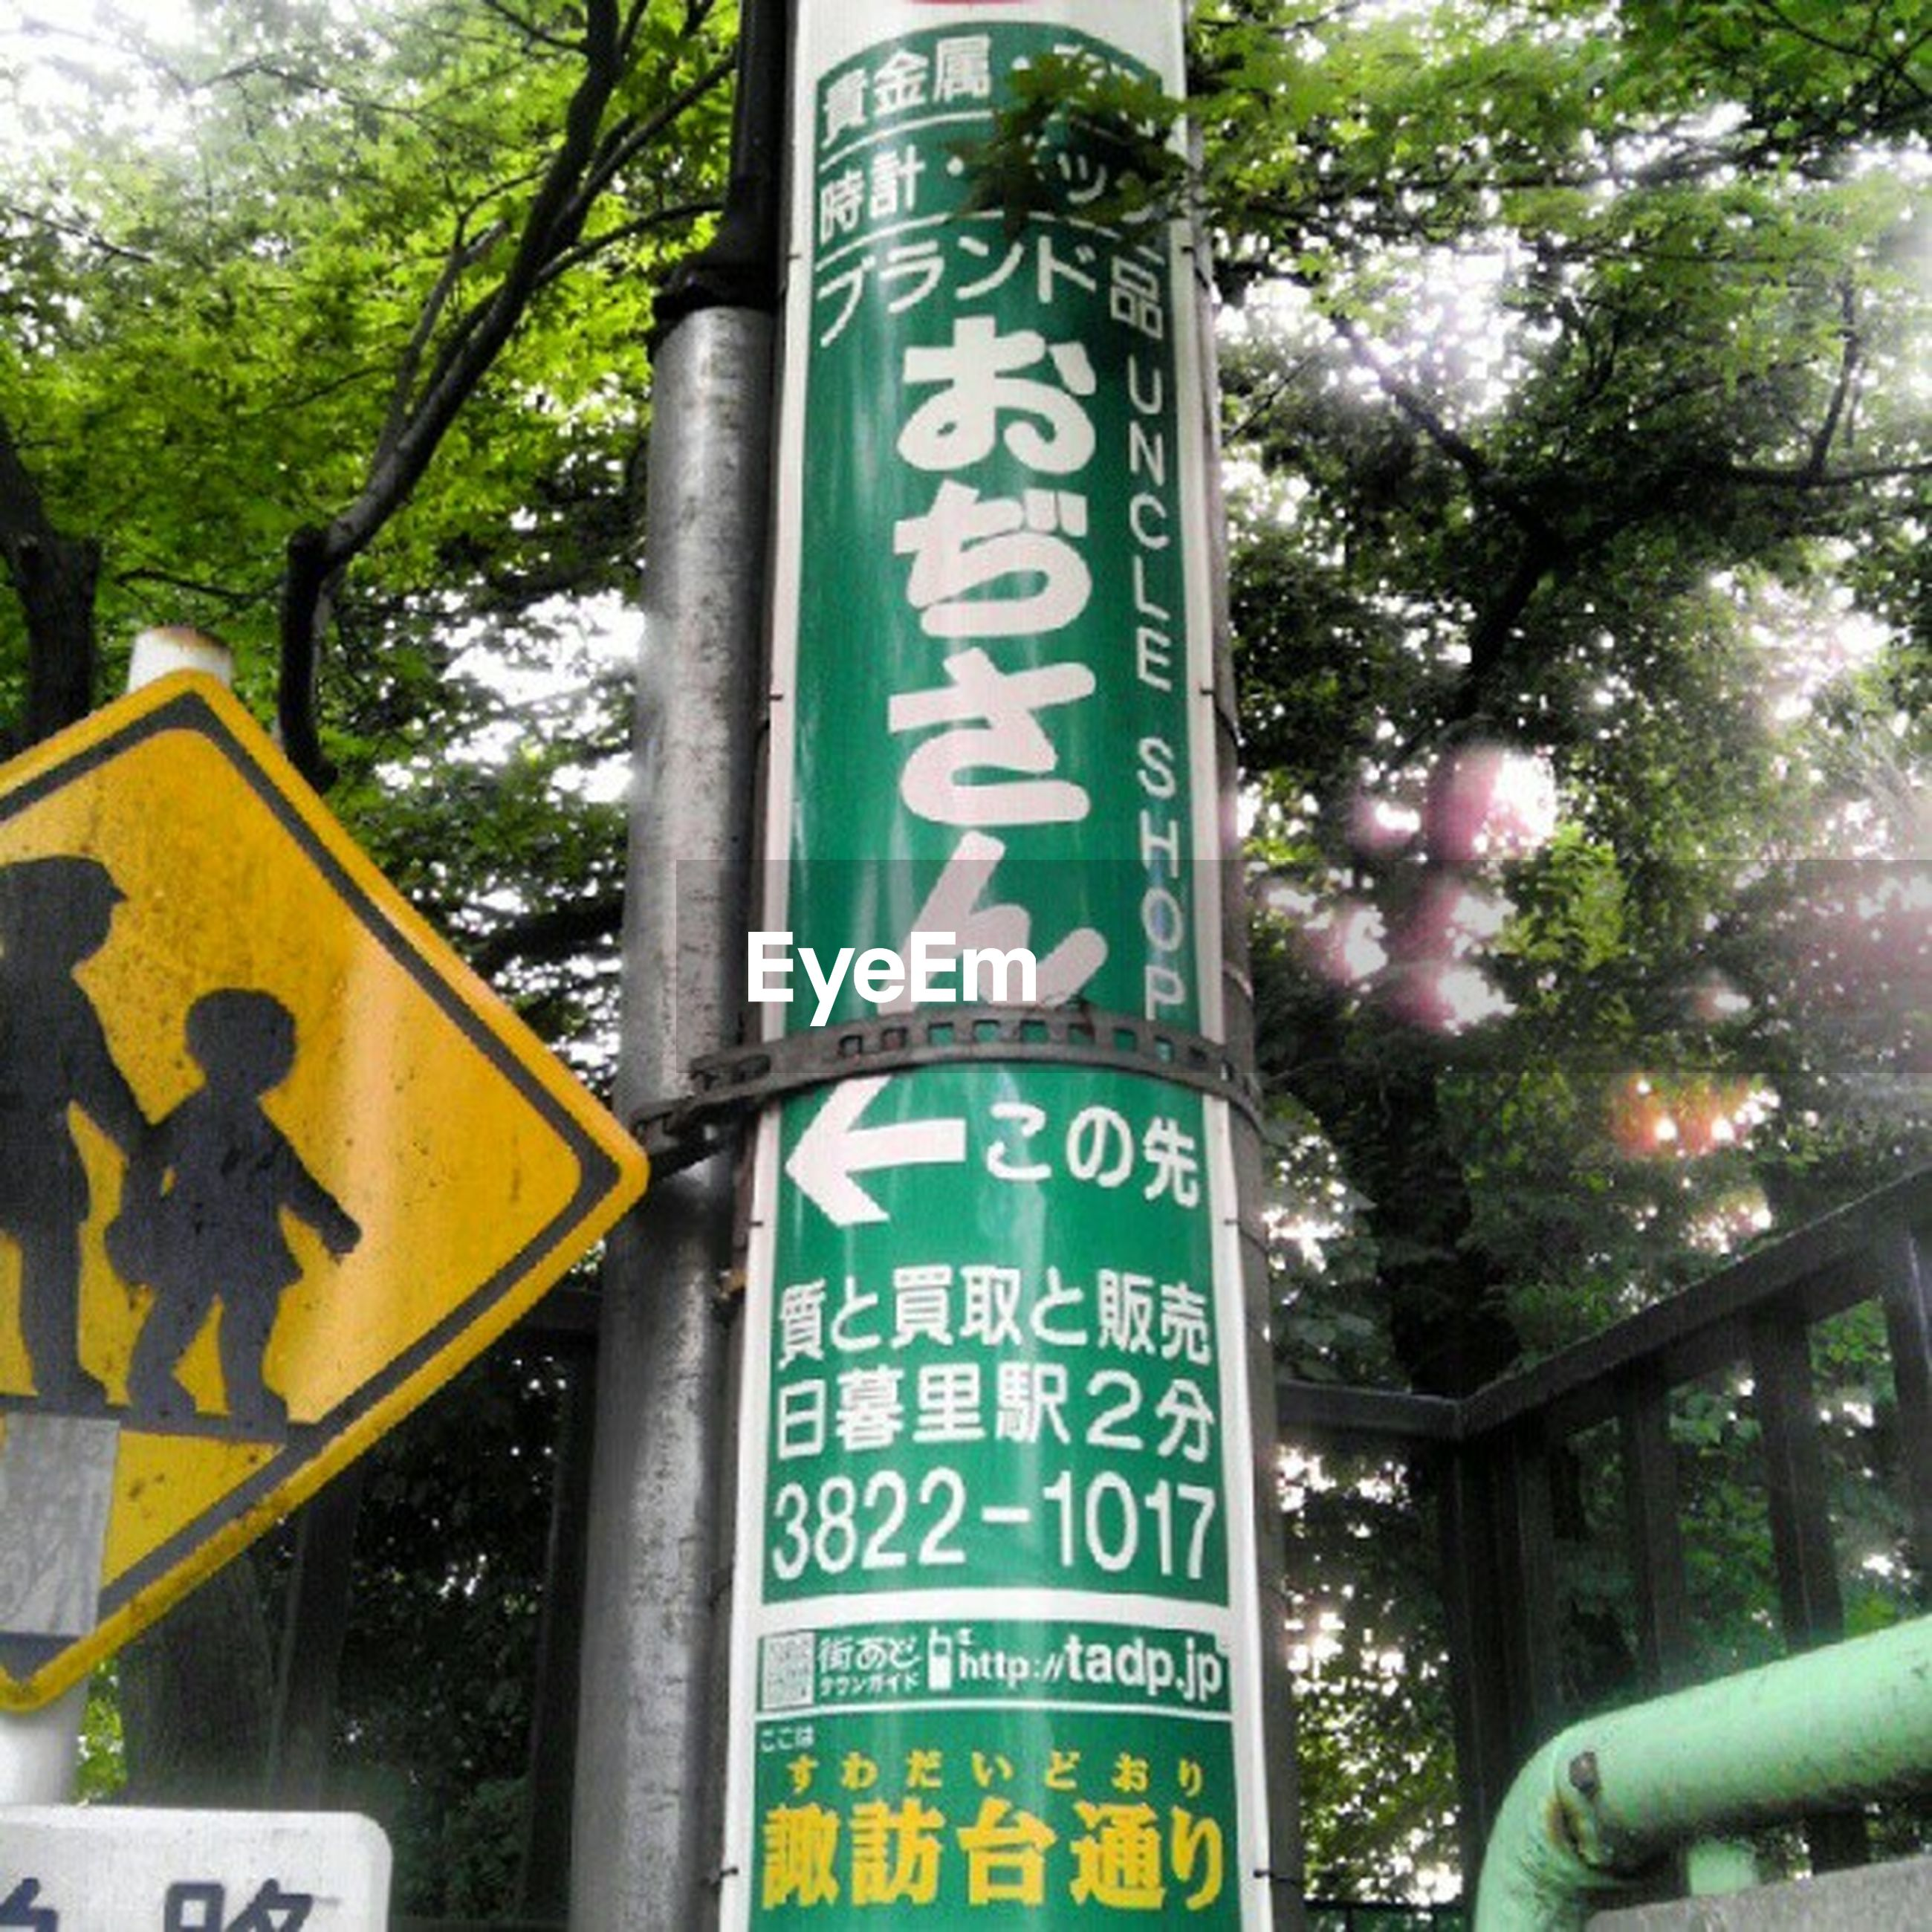 text, communication, western script, information sign, sign, road sign, guidance, capital letter, information, non-western script, tree, directional sign, warning sign, arrow symbol, direction, signboard, sign board, arrow sign, low angle view, pole